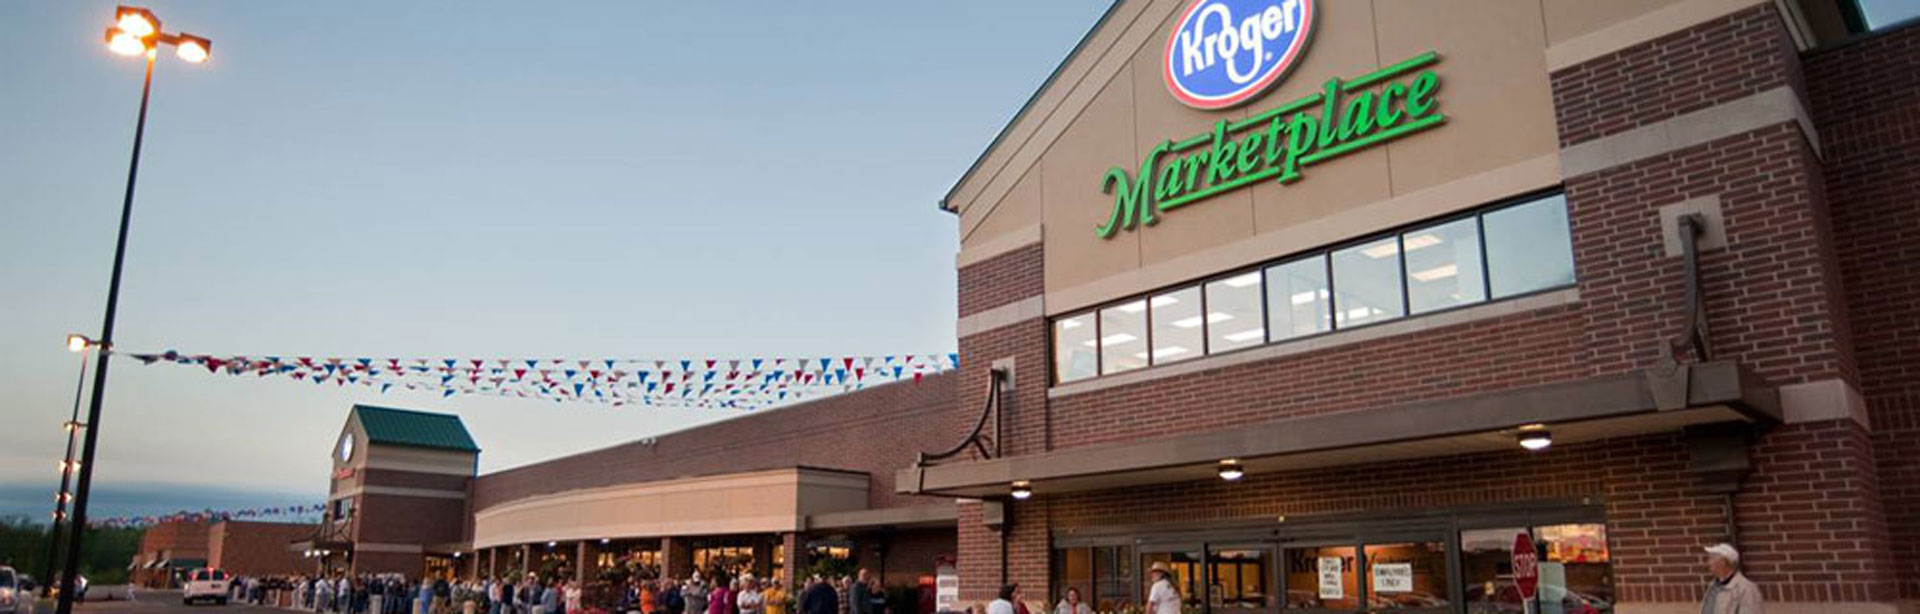 Kroger is using Google and Microsoft clouds to avoid paying Amazon